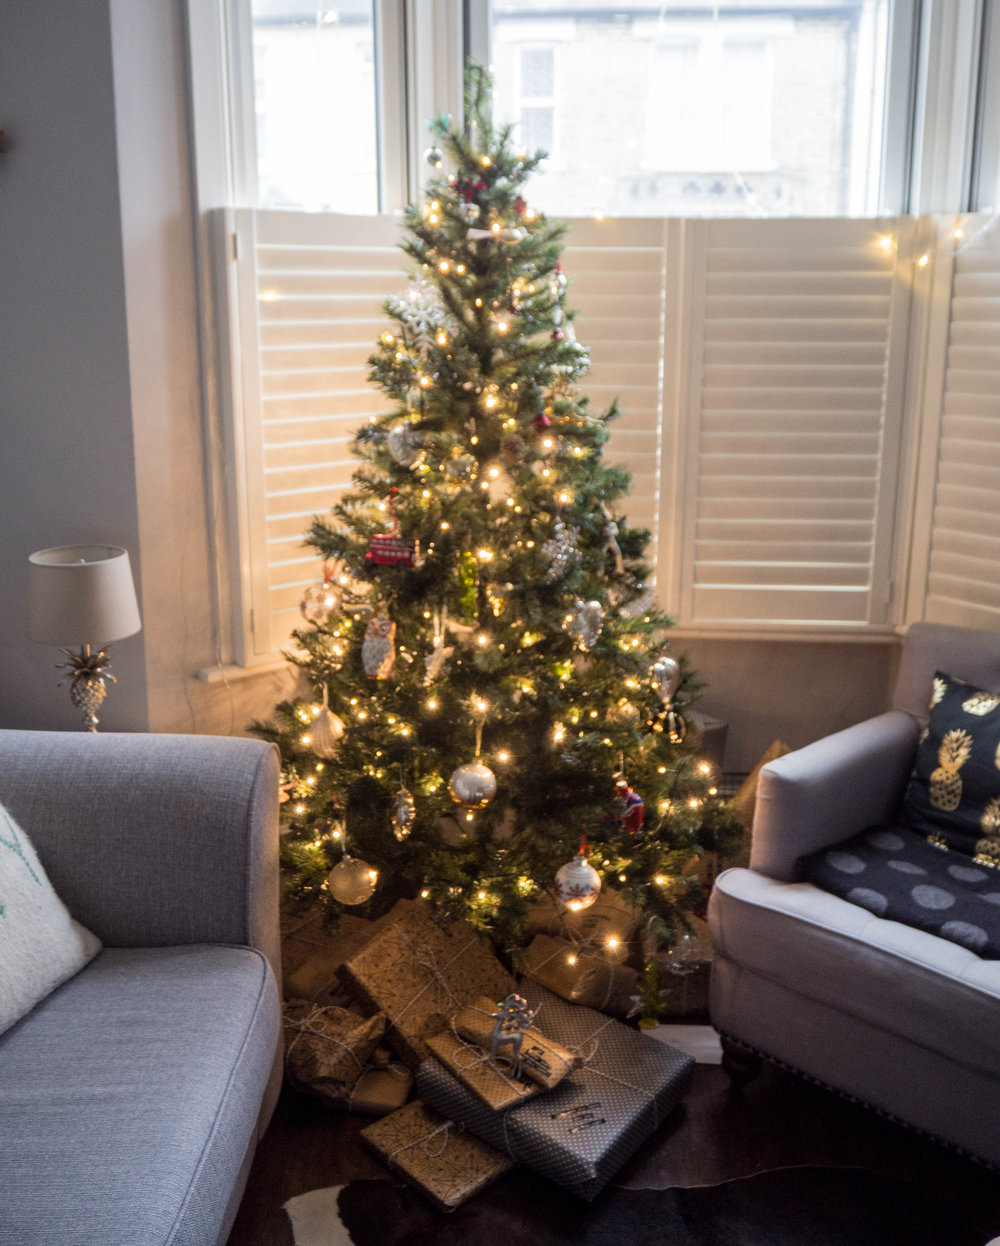 Christmas tree in a small lounge with shutters.